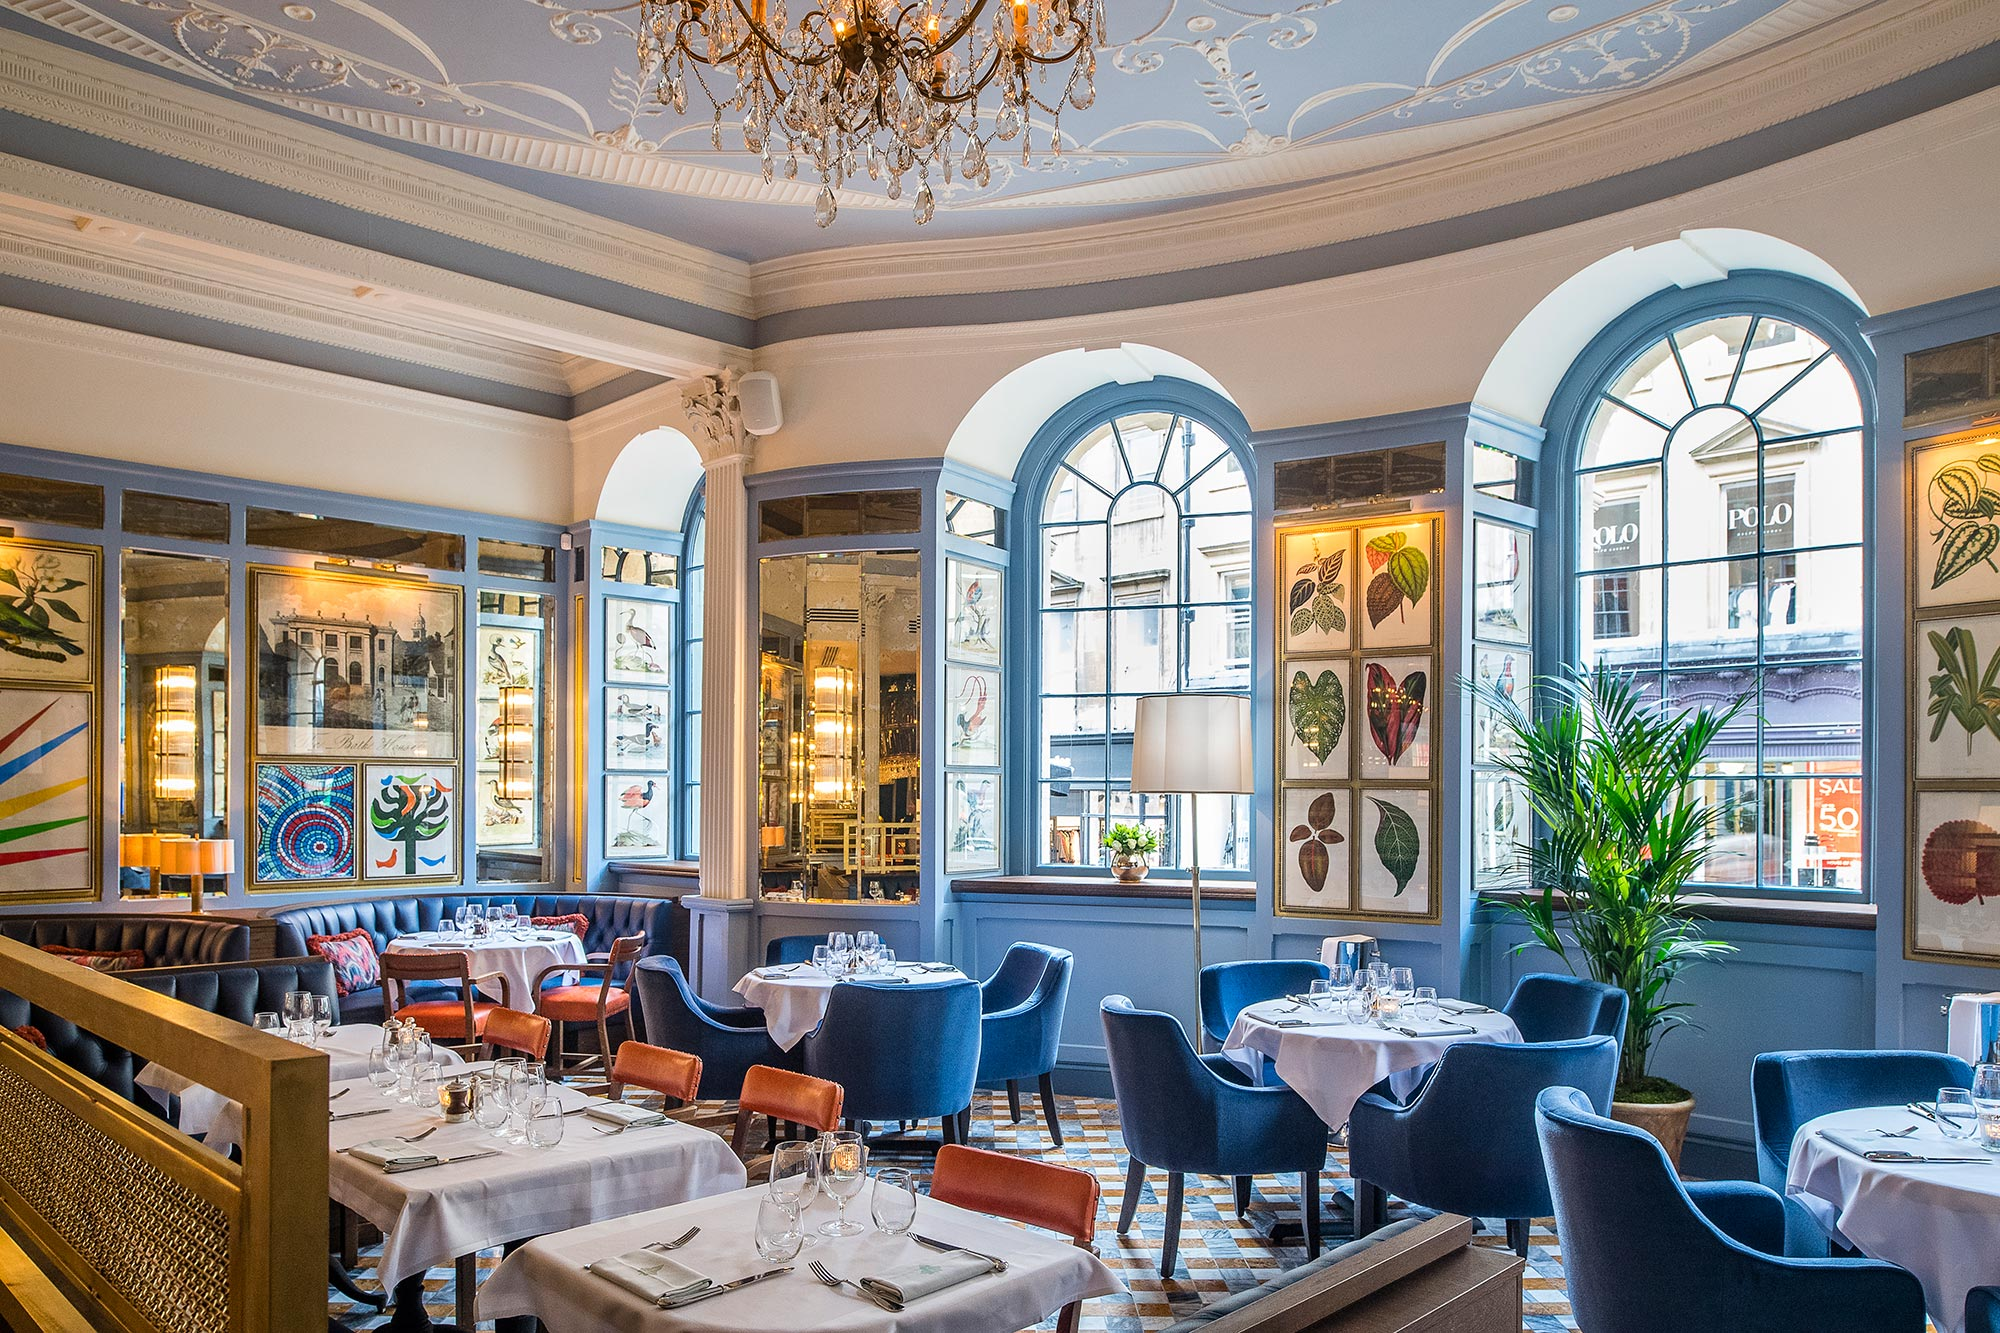 Restaurant near Bath Abbey, The Ivy Bath Brasserie - The Ivy Bath Brasserie